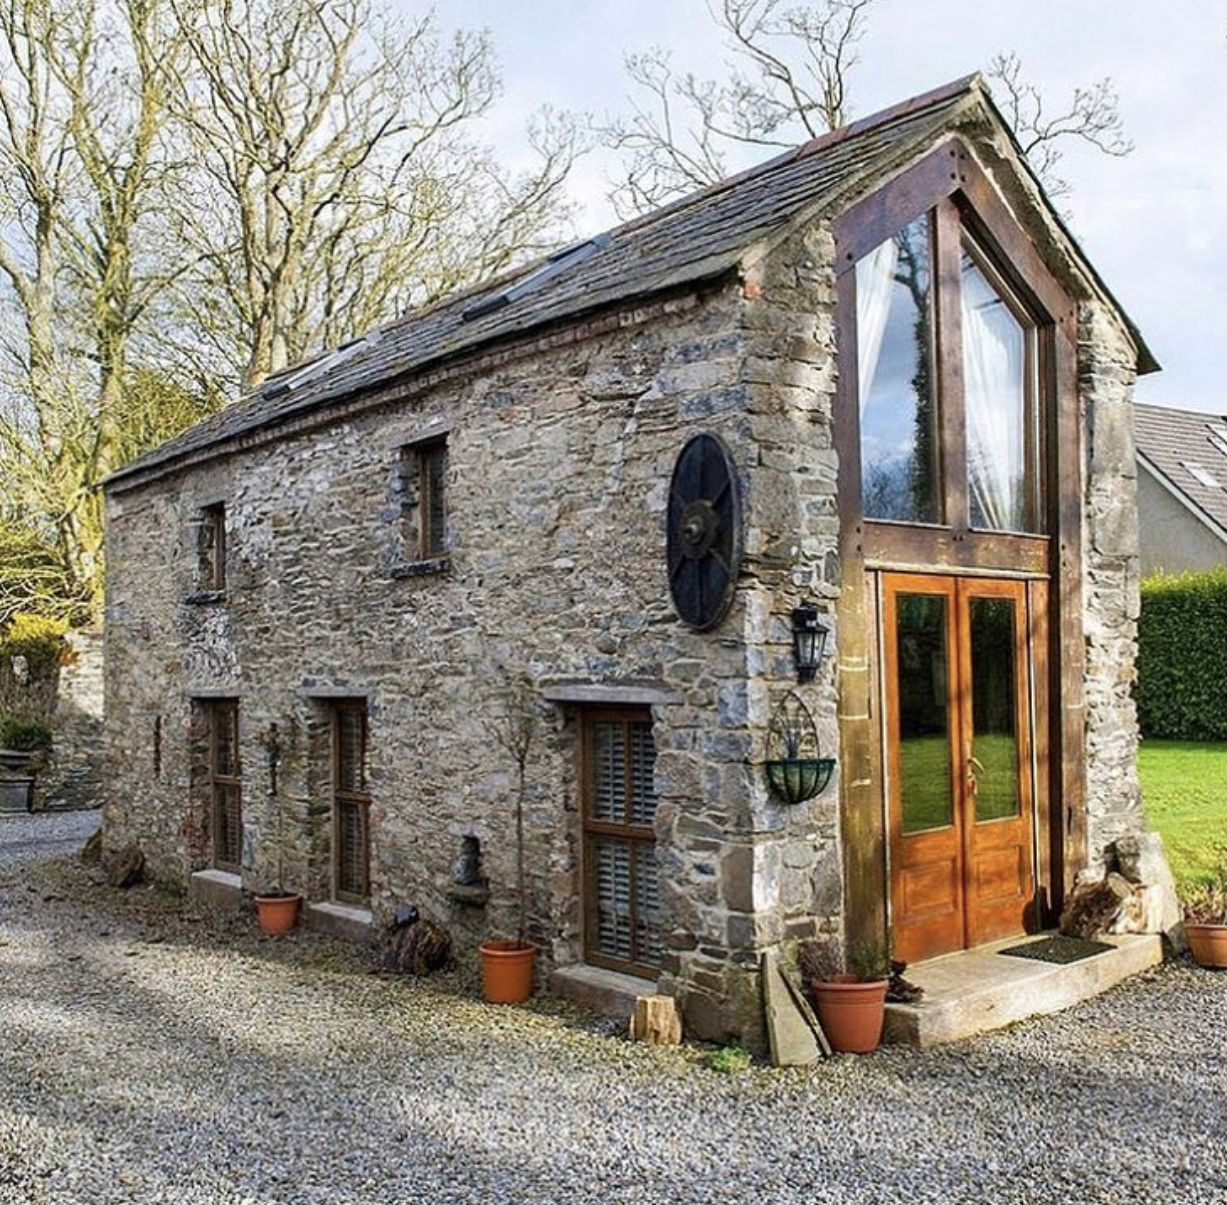 Sweet Stone Small House Love It Small House Tiny House Cabin Tiny House Design